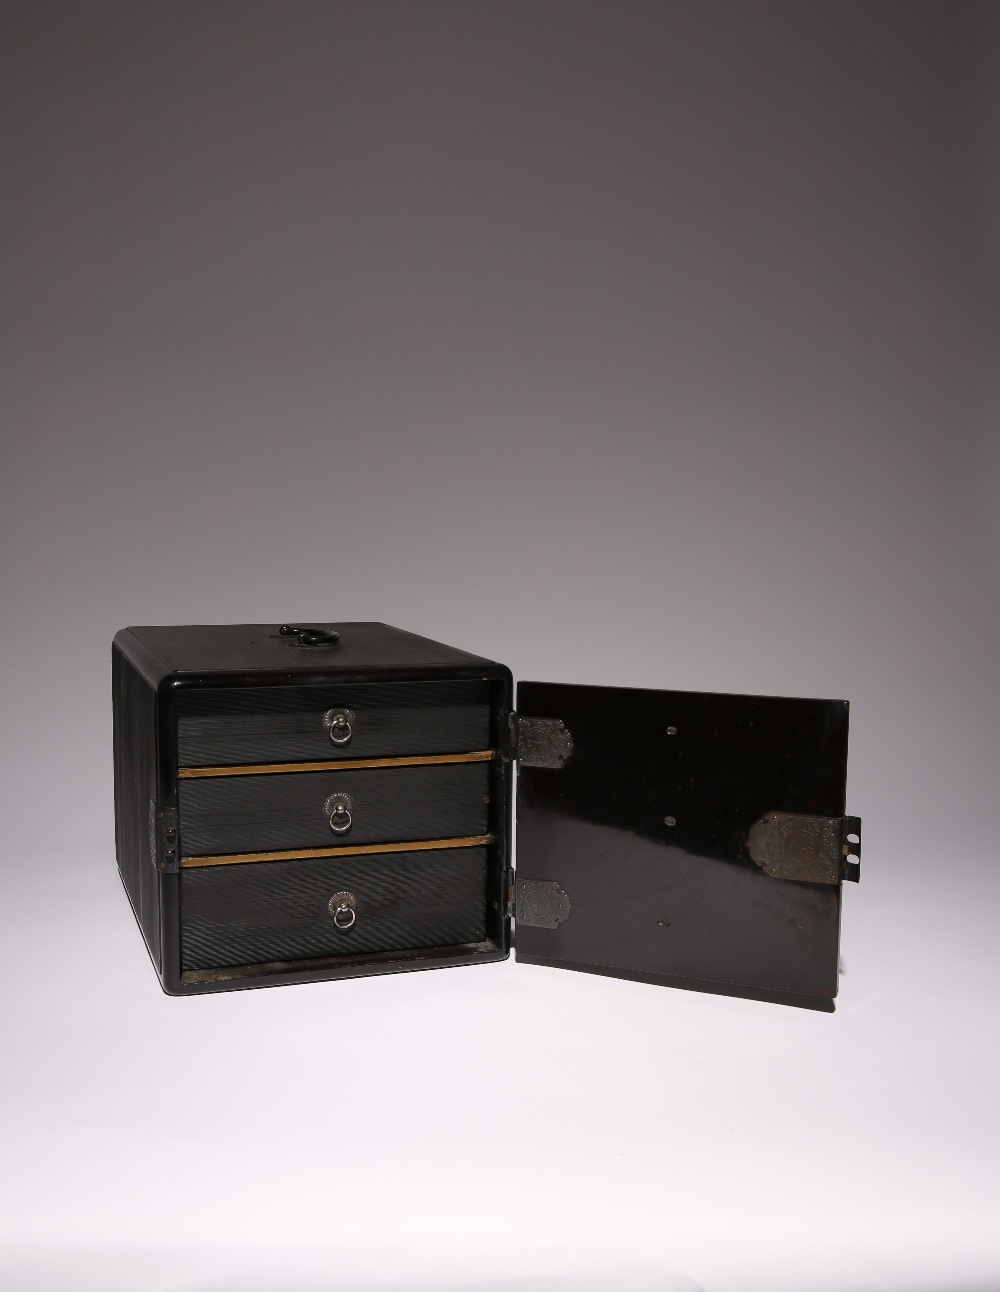 A JAPANESE BLACK LACQUER INRODANSU MEIJI PERIOD, 19TH CENTURY The inro box of typical rectangular